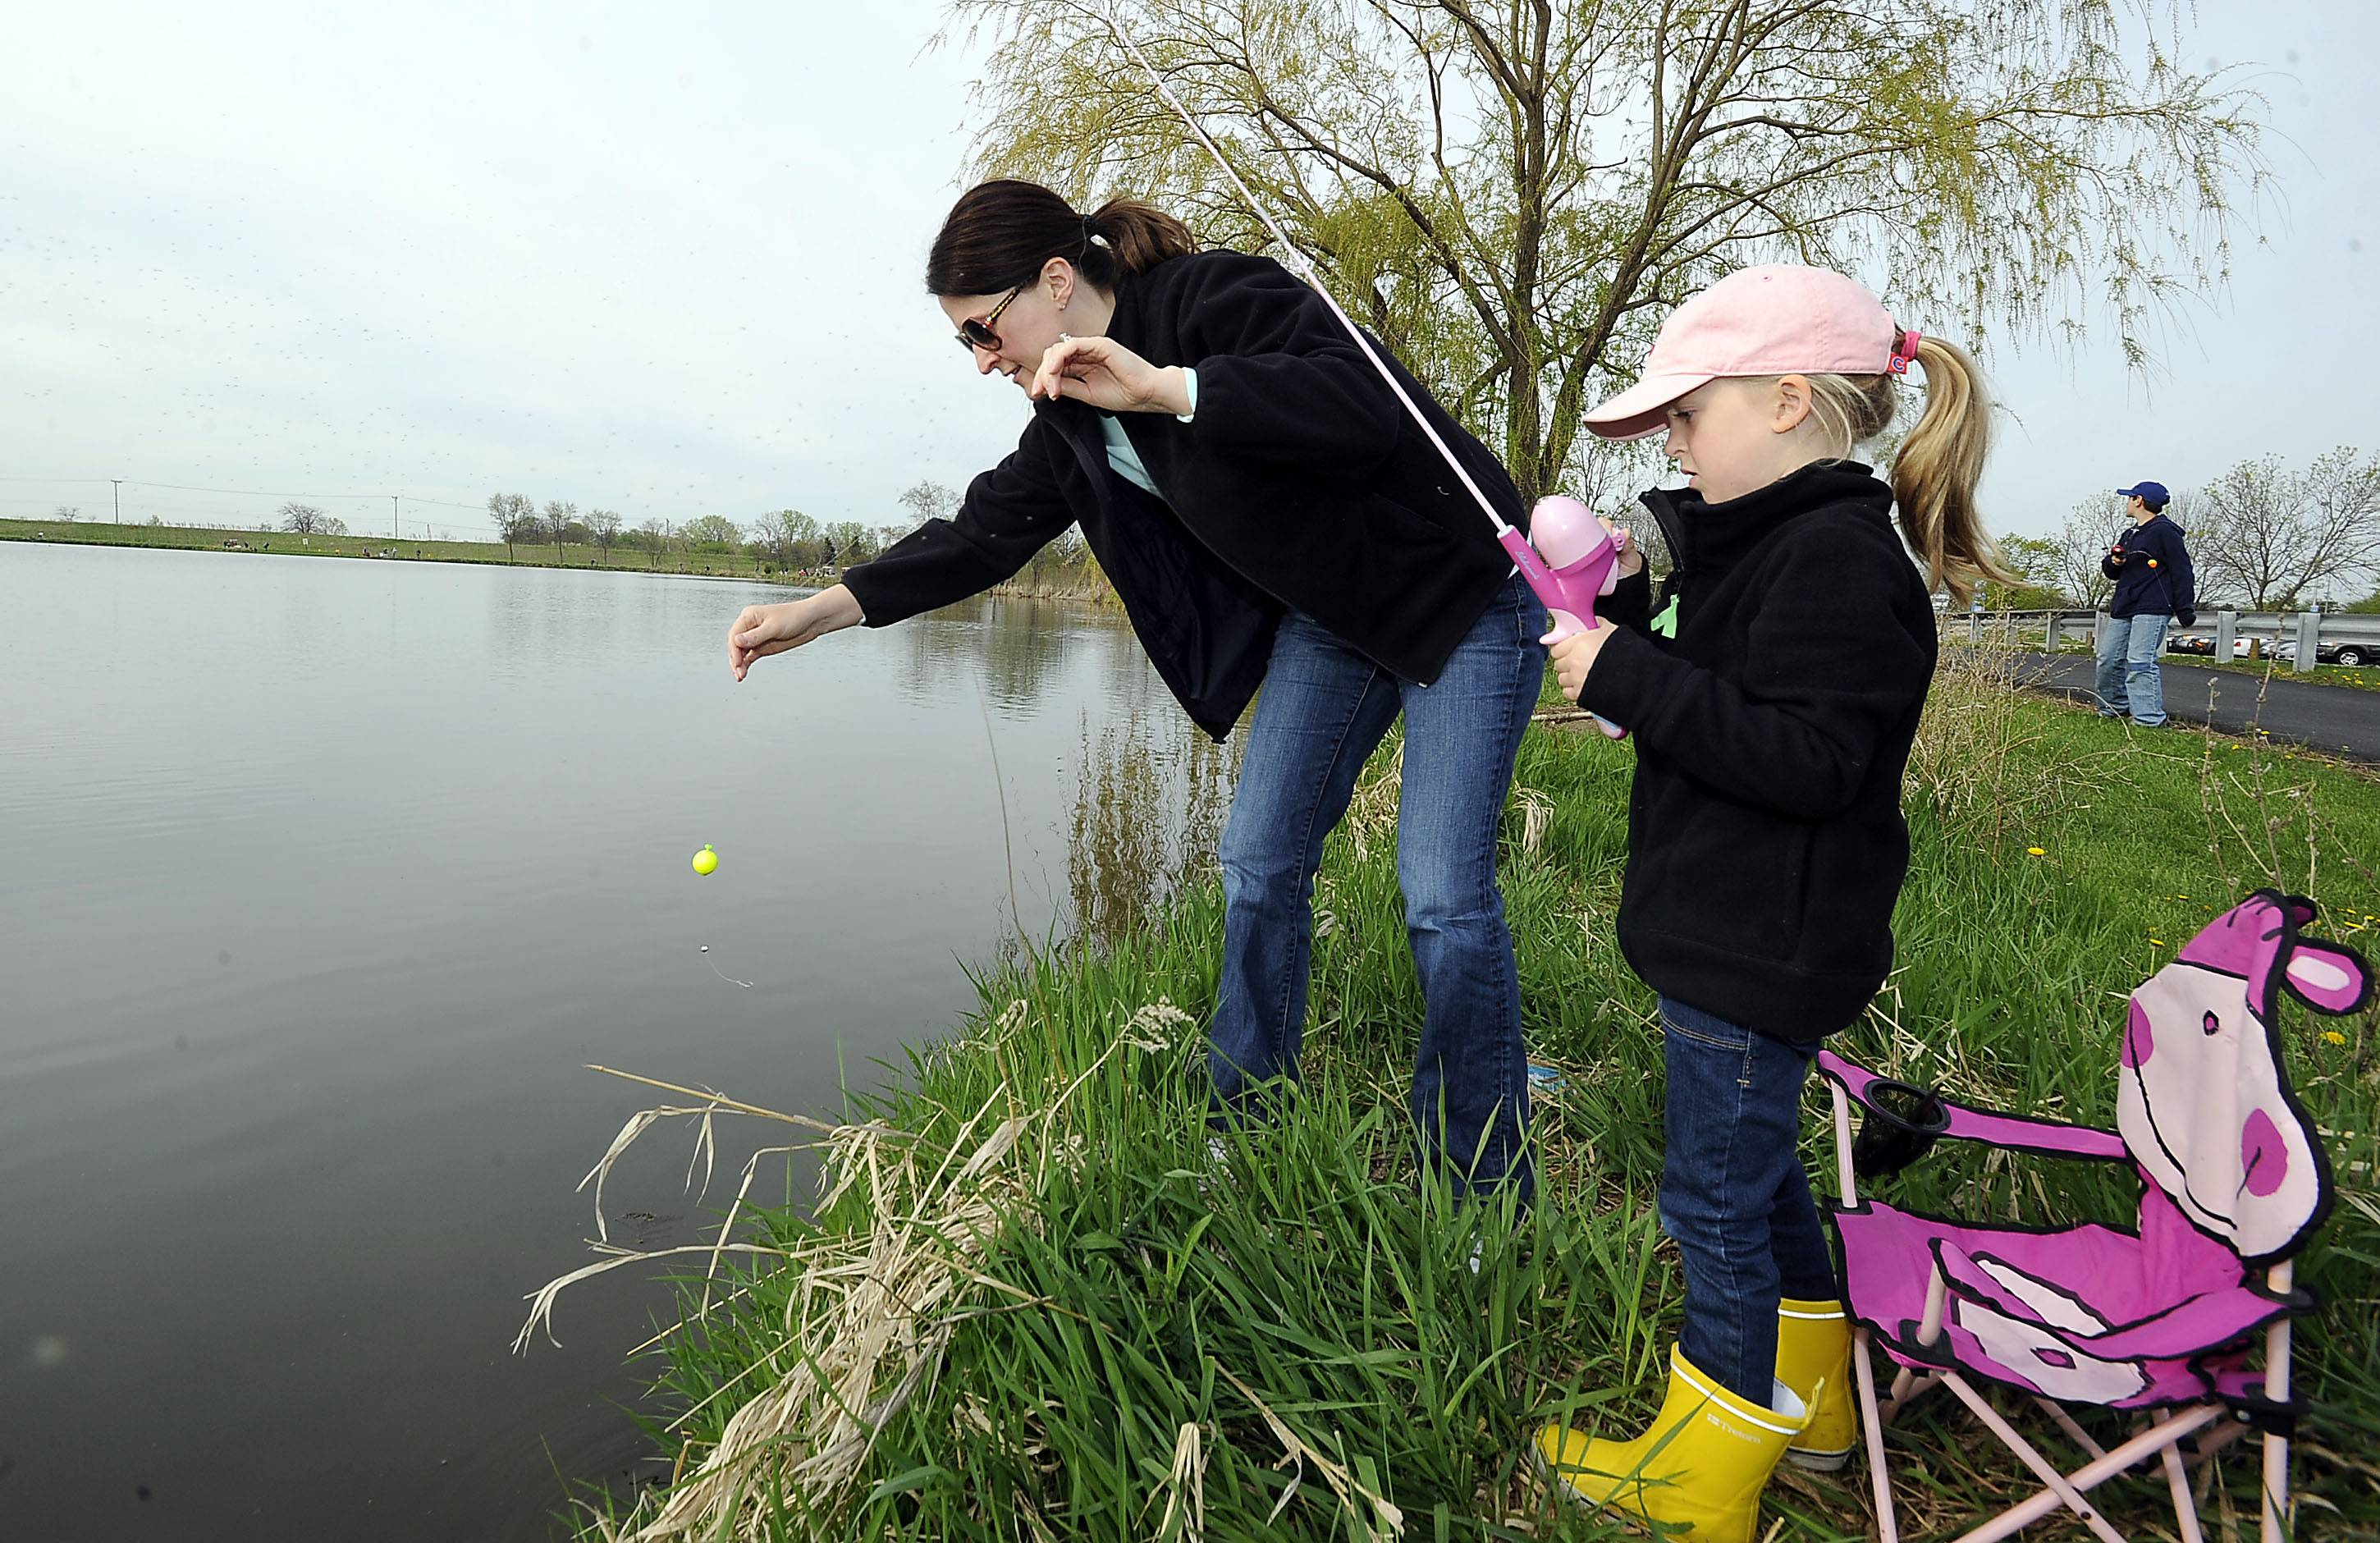 Jen Bubanovich of Palatine helps her daughter Emma, 5, with her fishing gear at the Palatine Park District Fishing Derby. They managed to catch one small bluegill fish in the early morning family outing.